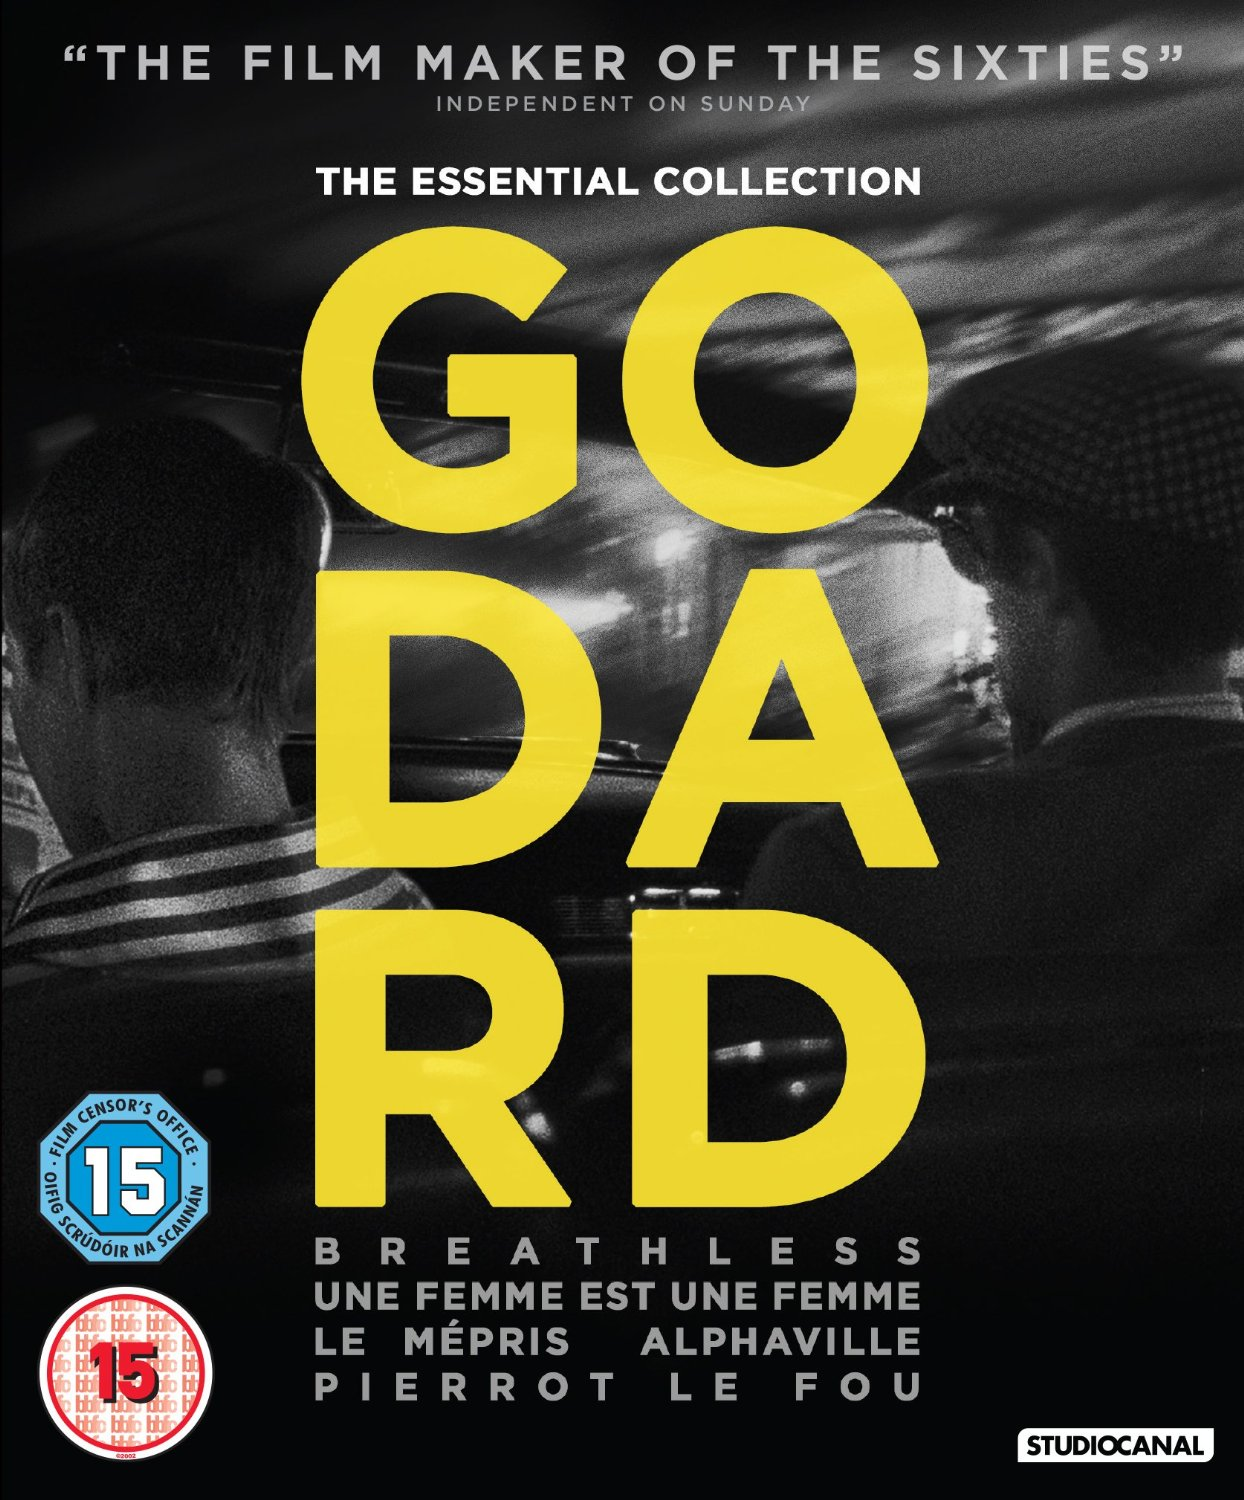 Buy Godard: The Essential Collection (Blu-ray Box Set)